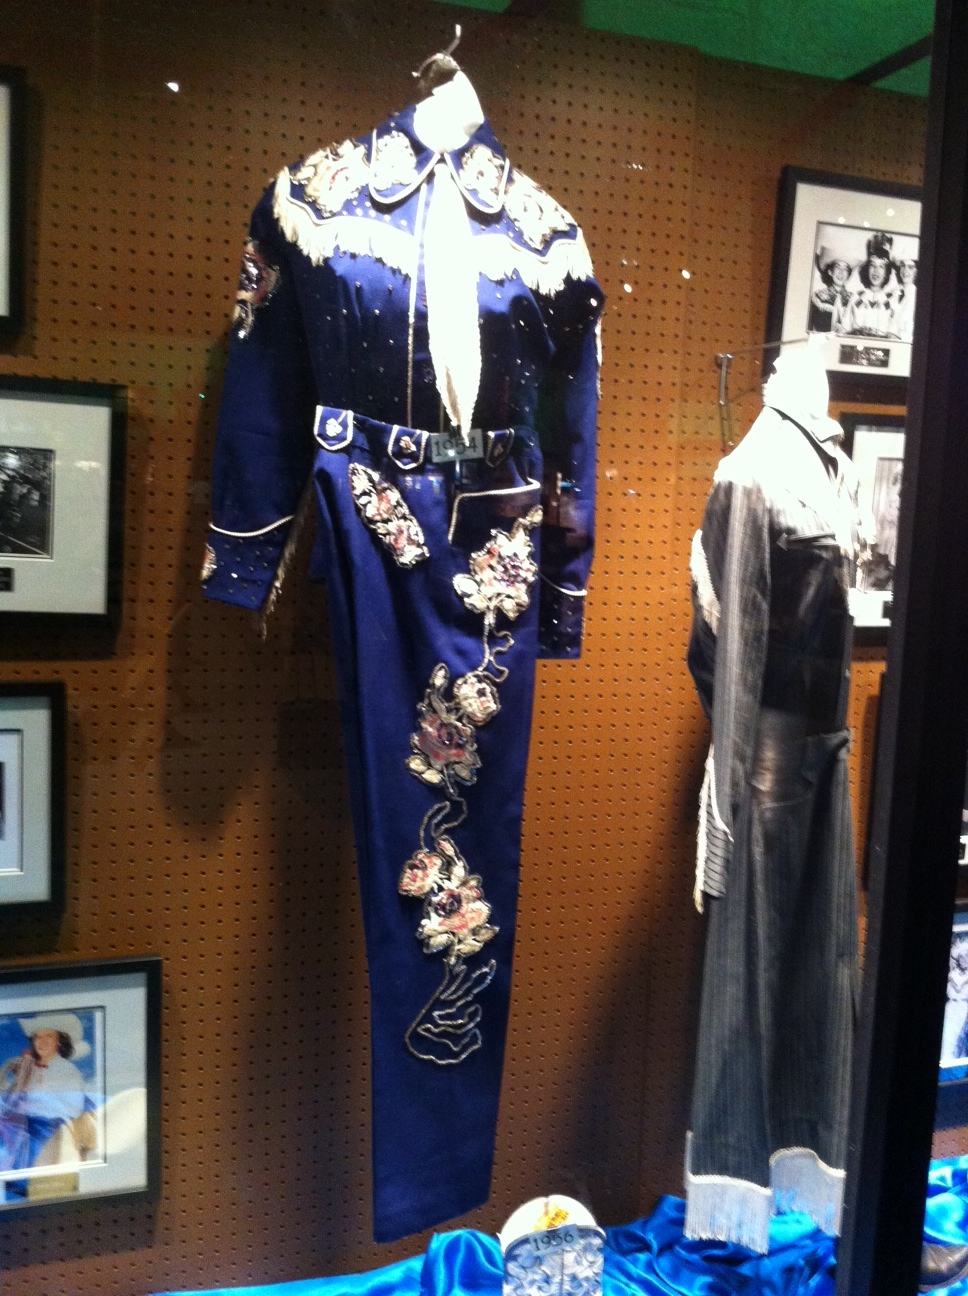 There is an wonderful exhibition of about 20 Stampede Queen outfits from the '50s to present day, each in their own display case.  It reminded me of the Elvis costumes i saw in Memphis at the STAX Museum of American Soul Music, Sun Studio Museum. Memphis Rock N' Soul Museum and Graceland.